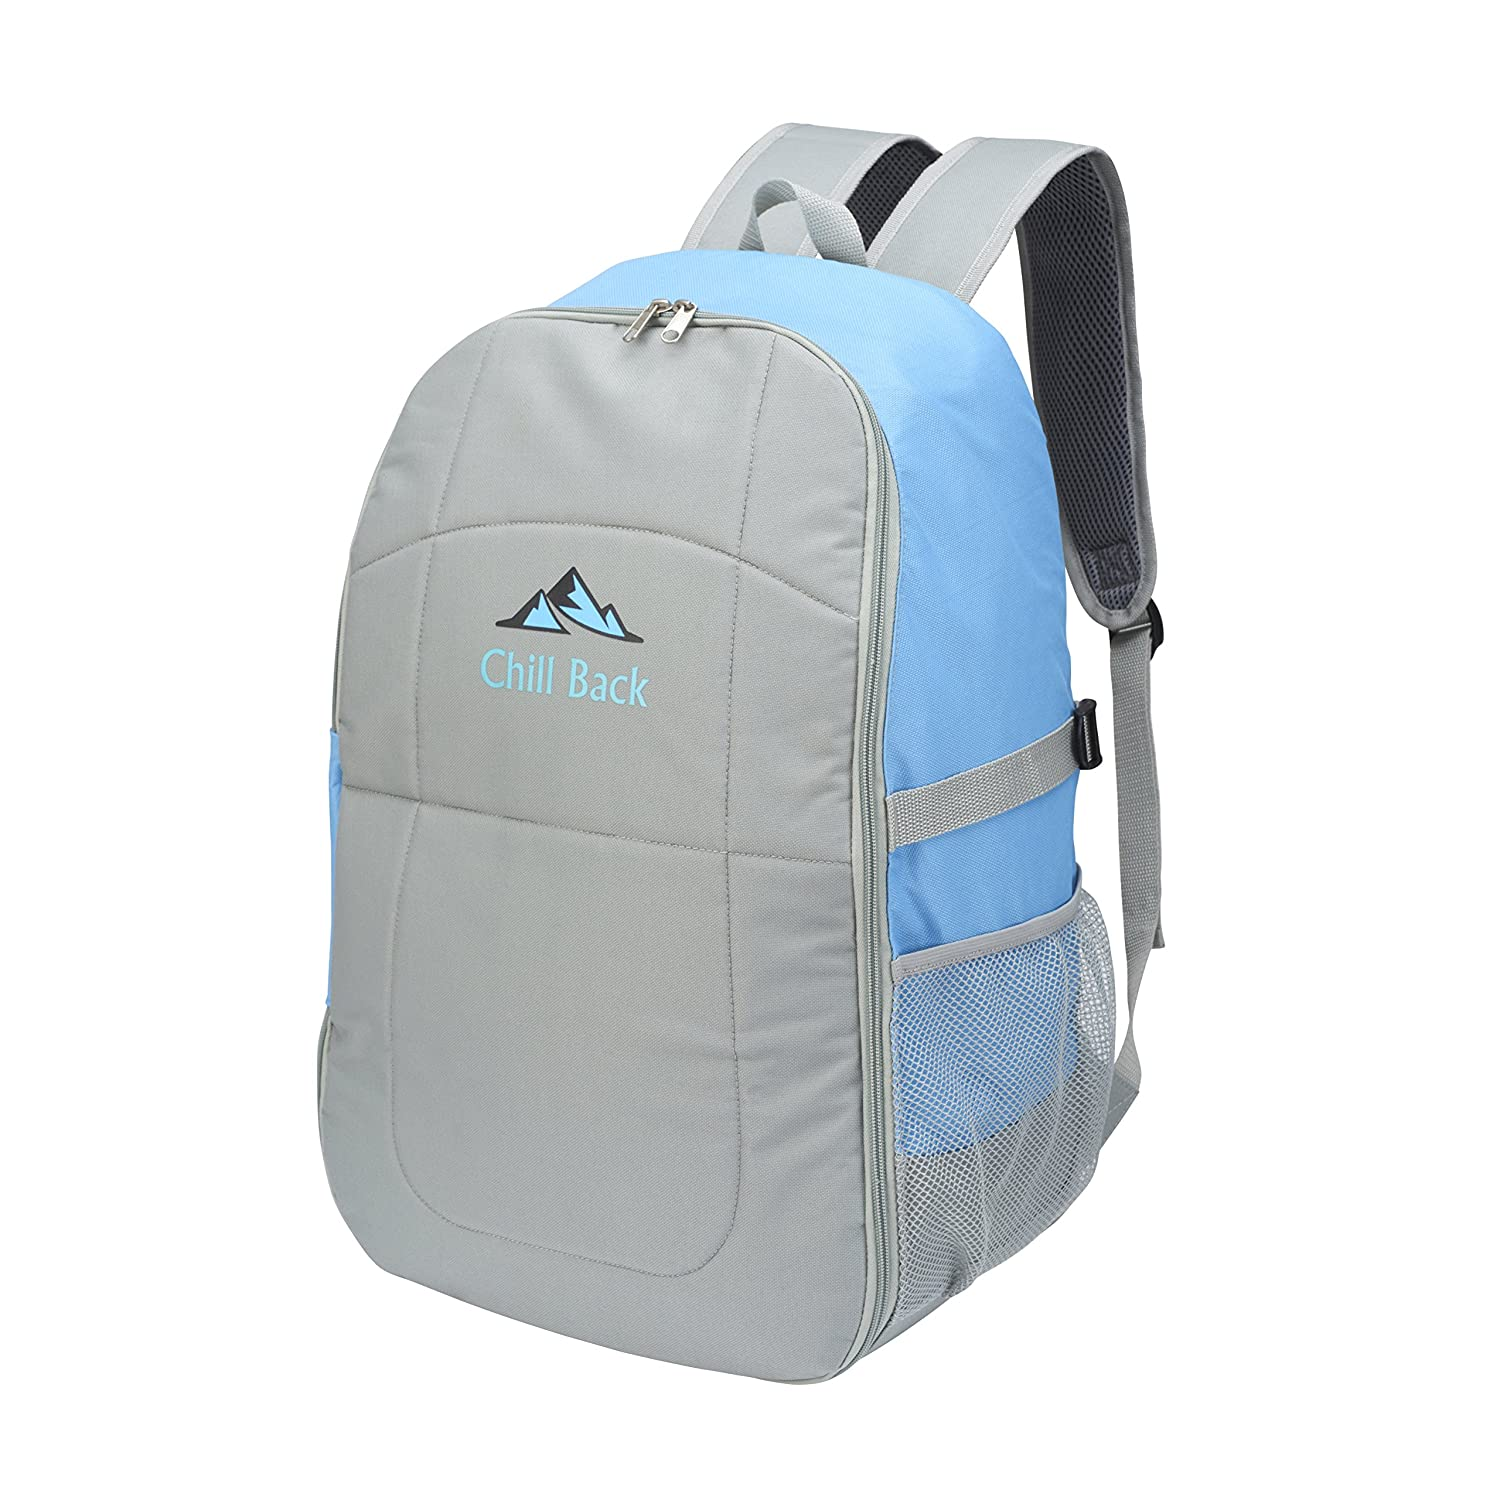 Chill Back, the large cool bag rucksack with wine cooler Cross Equipment CB_1500